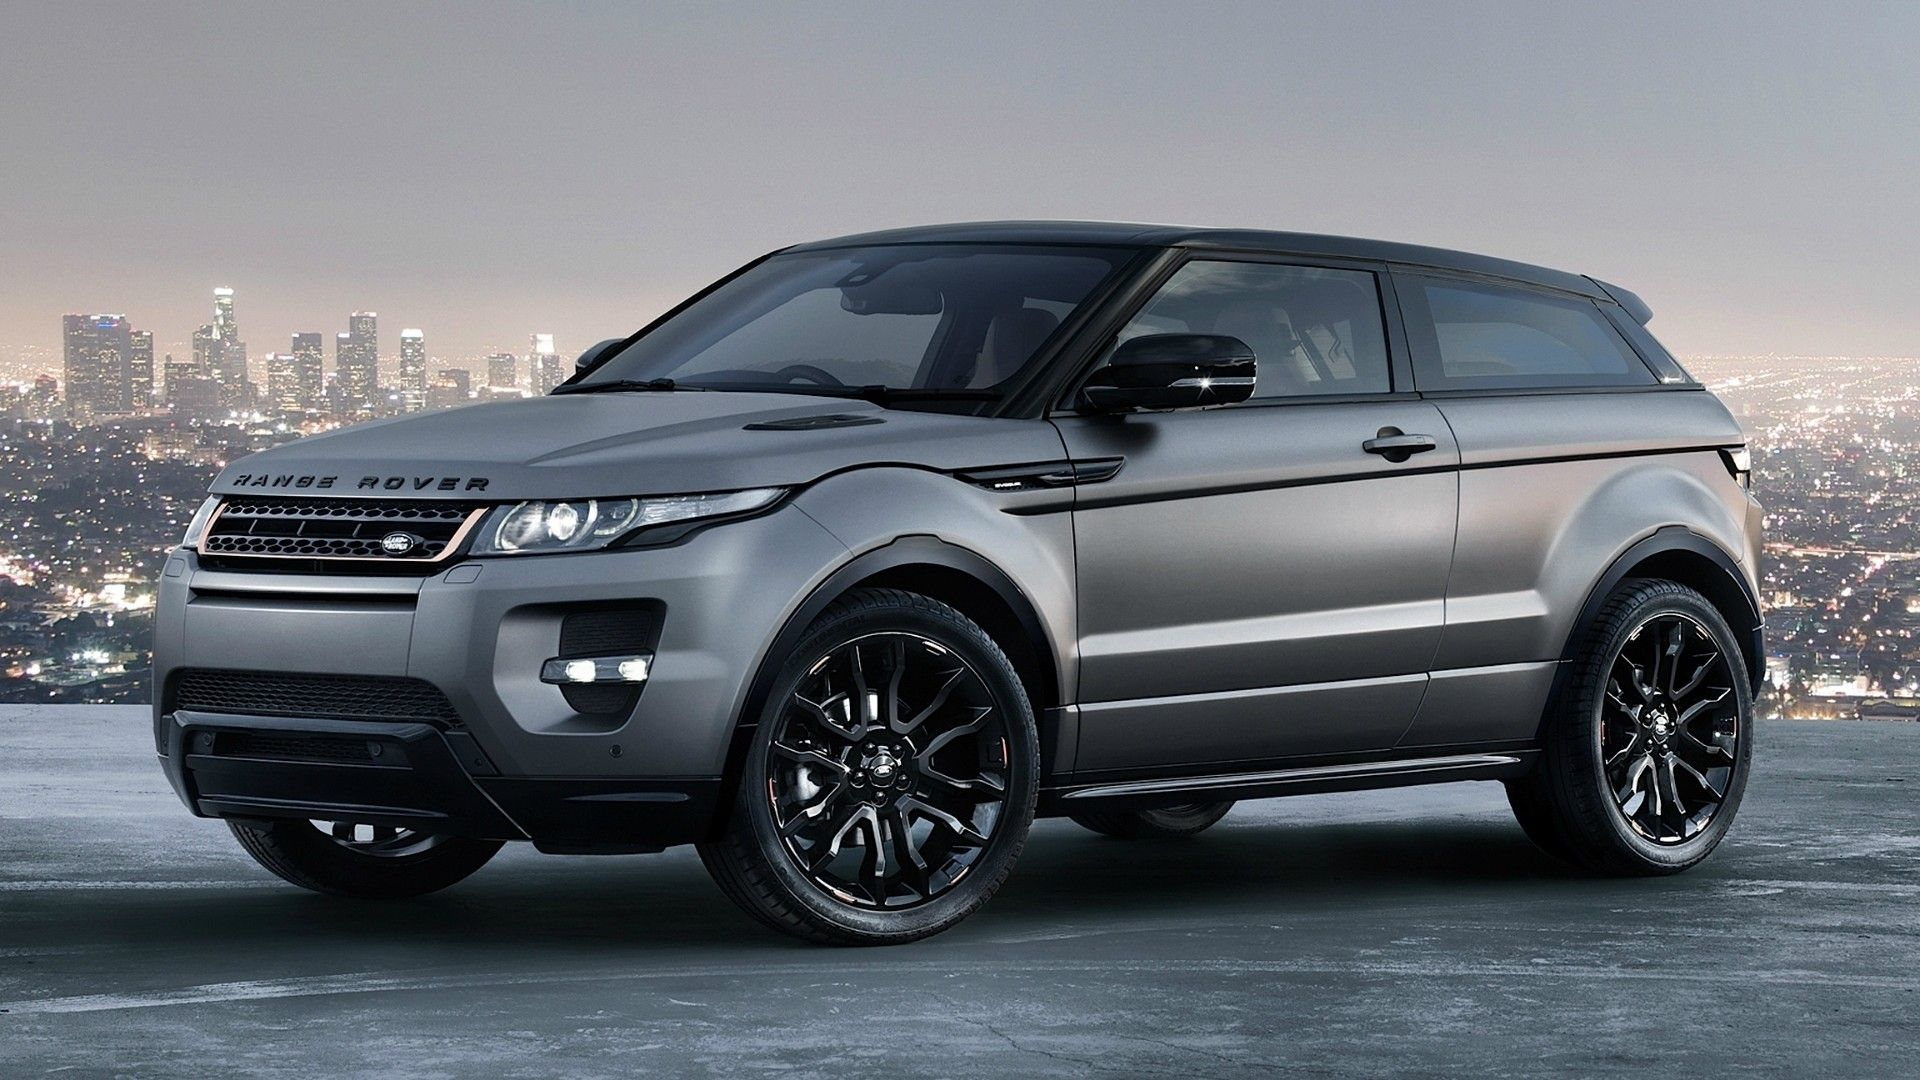 Best 25 Range rover price ideas on Pinterest